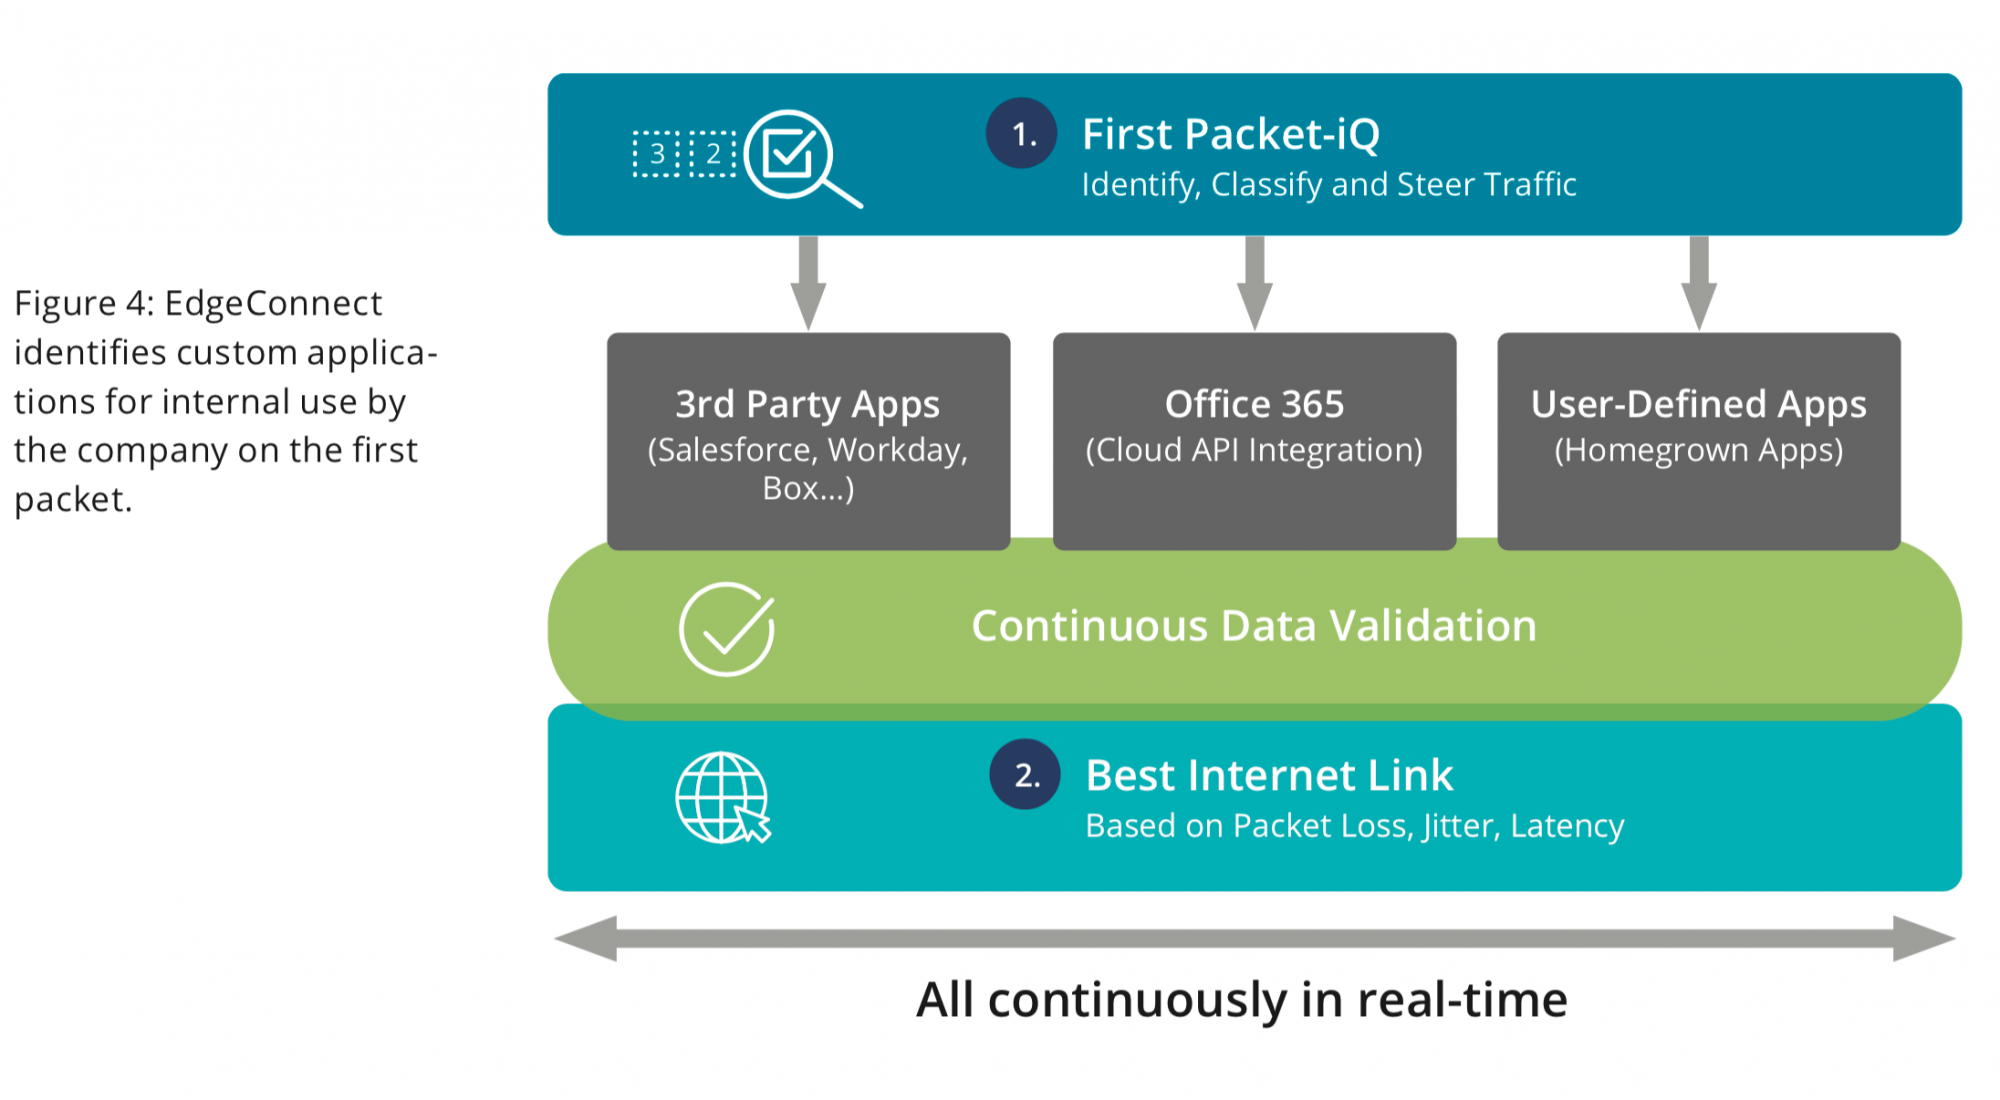 Figure 4: EdgeConnect identifies custom applications for internal use by the company on the first packet.